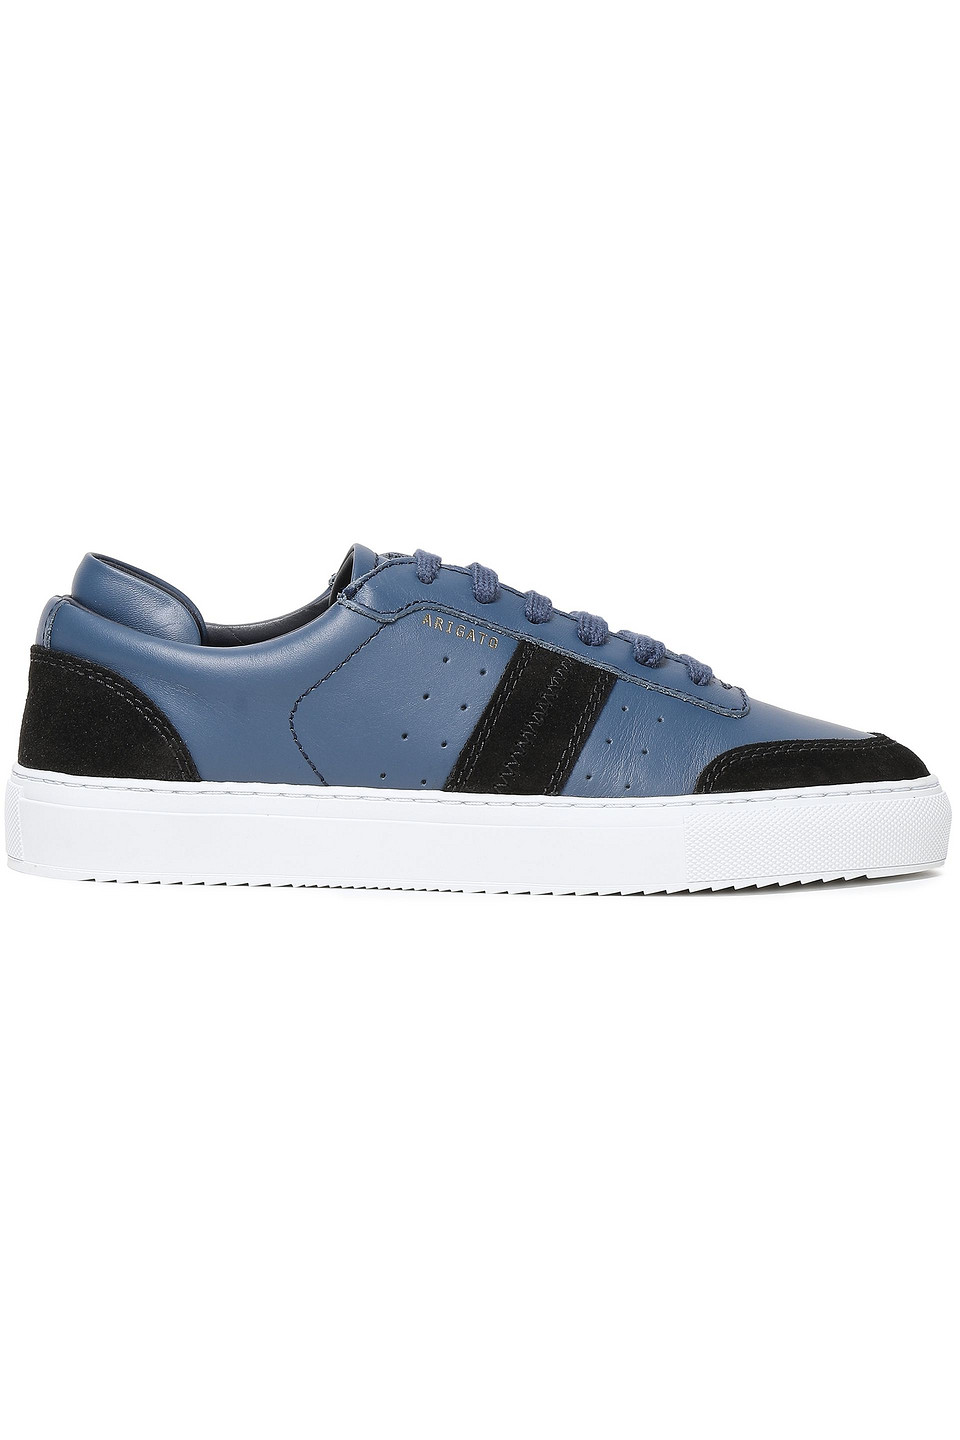 AXEL ARIGATO | Axel Arigato Woman Color-block Leather And Suede Sneakers Navy | Clouty